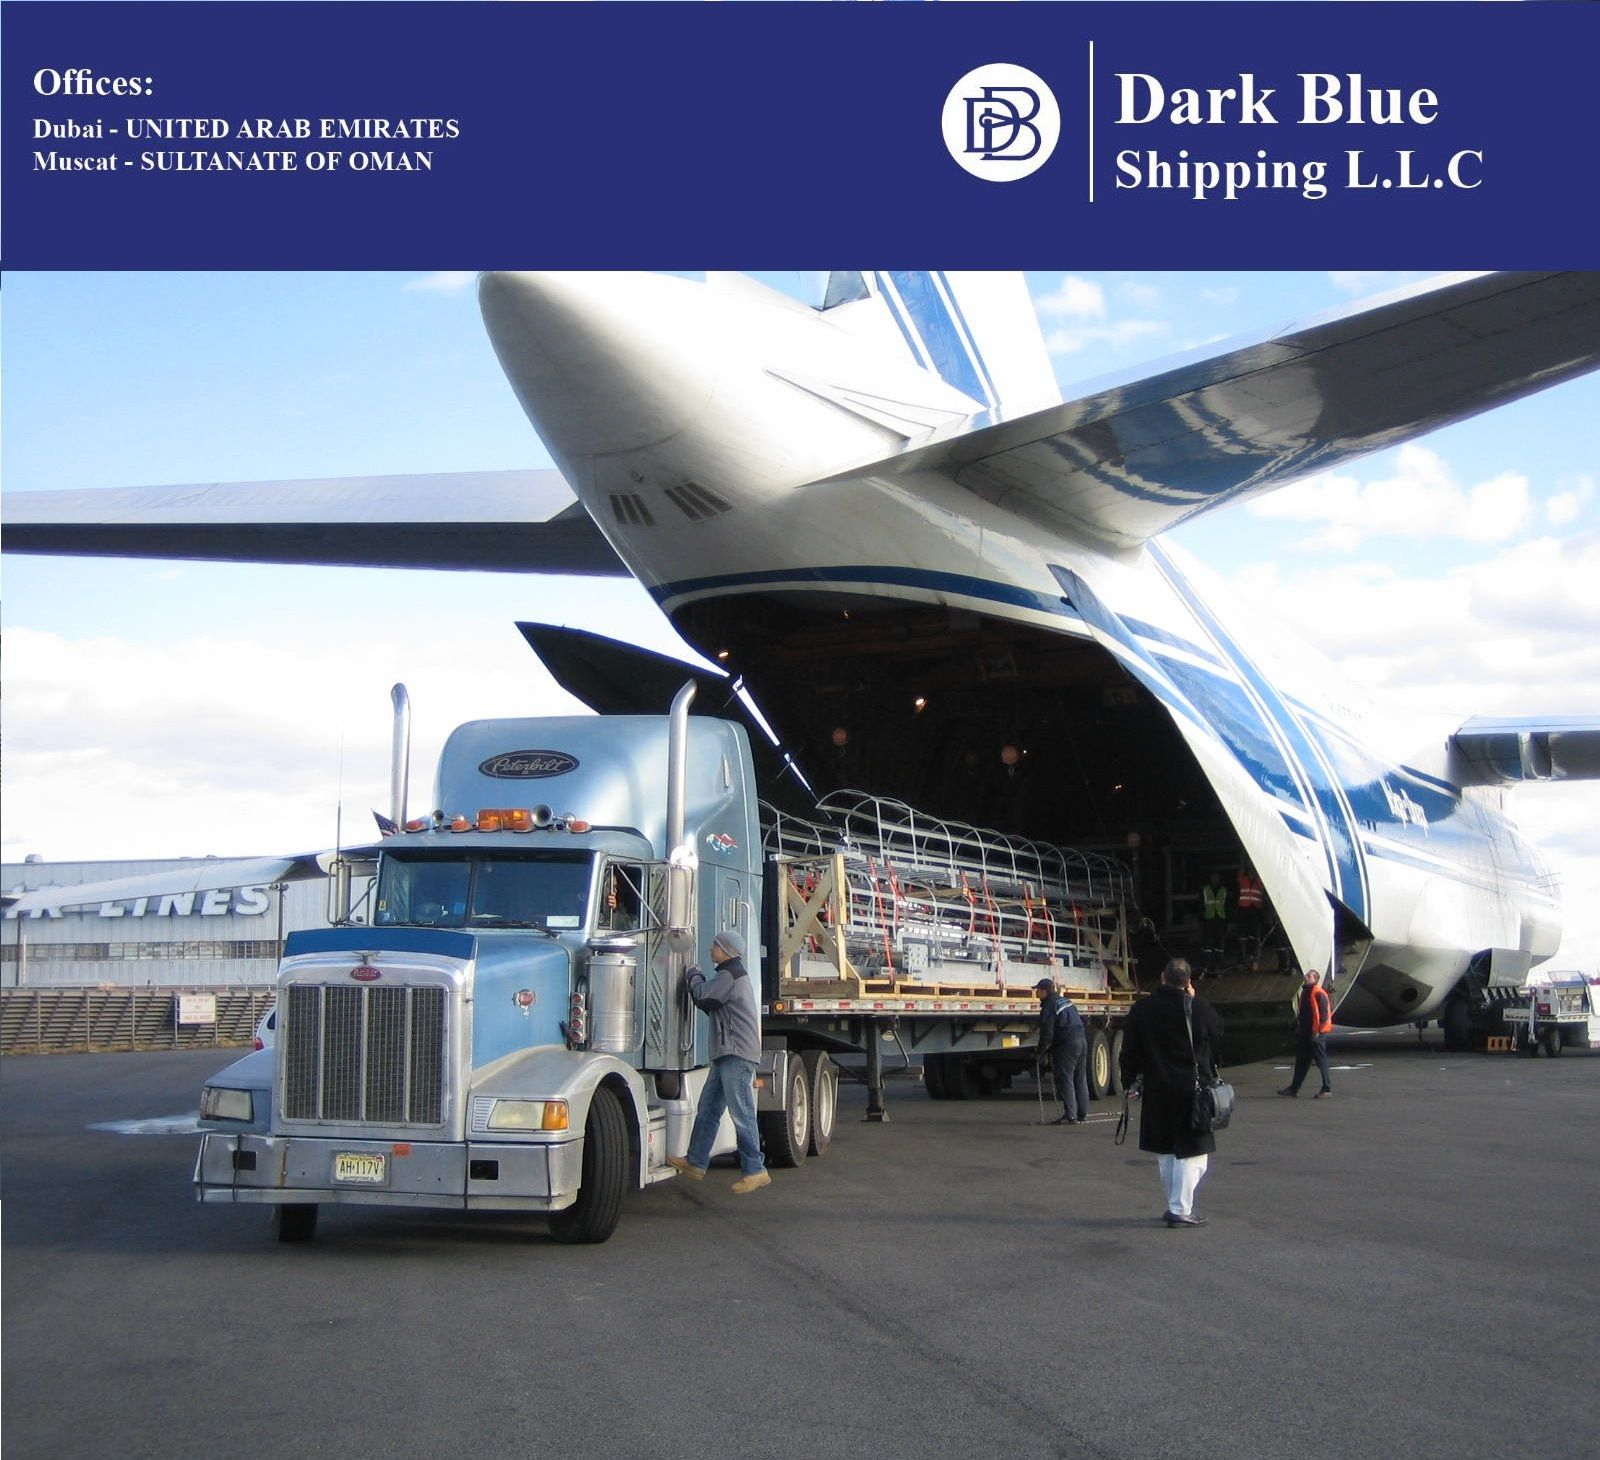 Why Dark Blue Air Cargo Competitive Pricing Free Estimates Move 7 Days A Week Trust Prompt Delive Transportation Services Logistics Ocean Freight